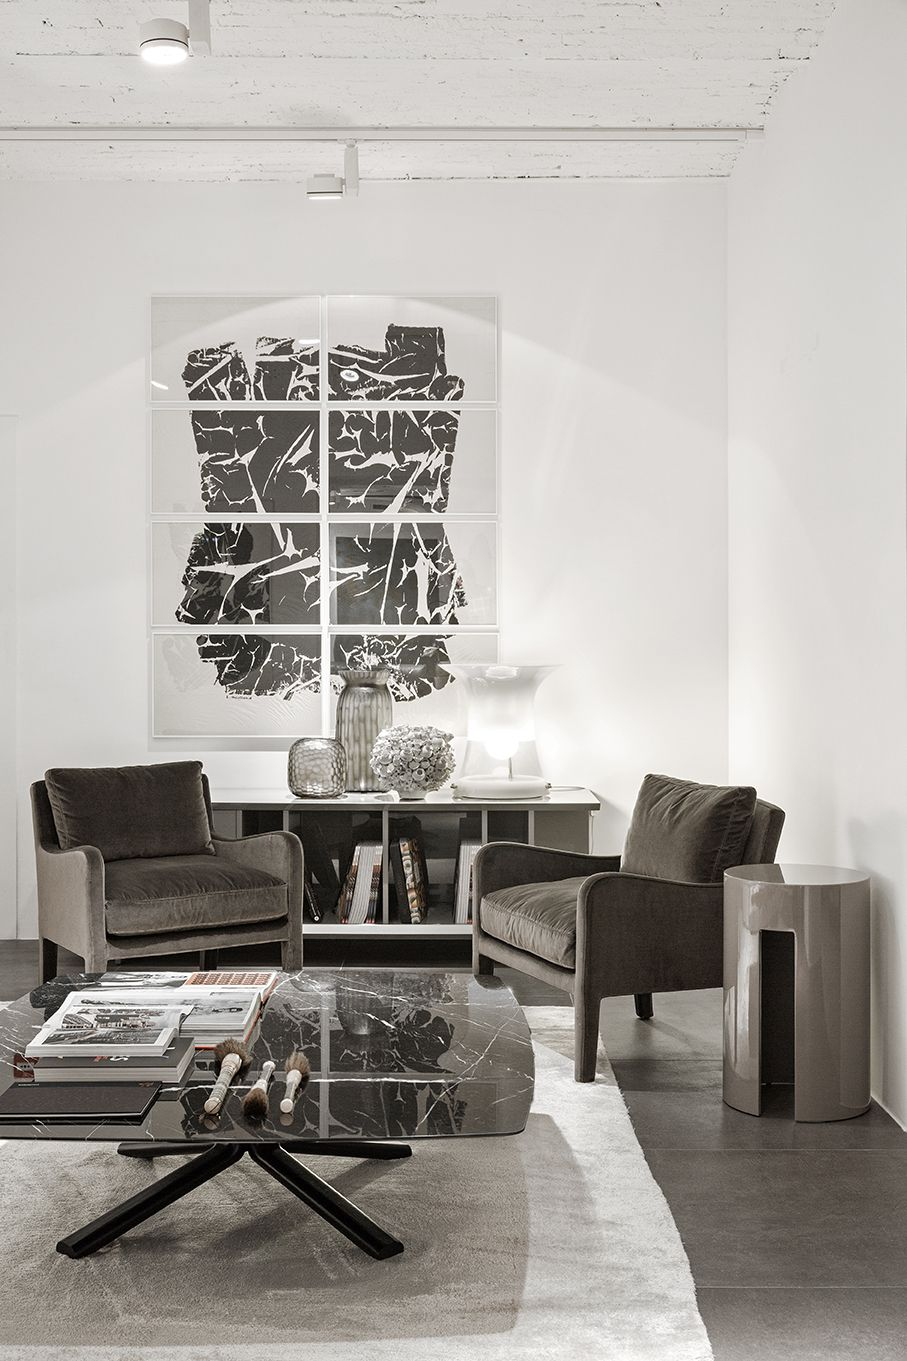 MERIDIANI I FOSTER SOFT small armchairs I MILLER low table I GONG ...